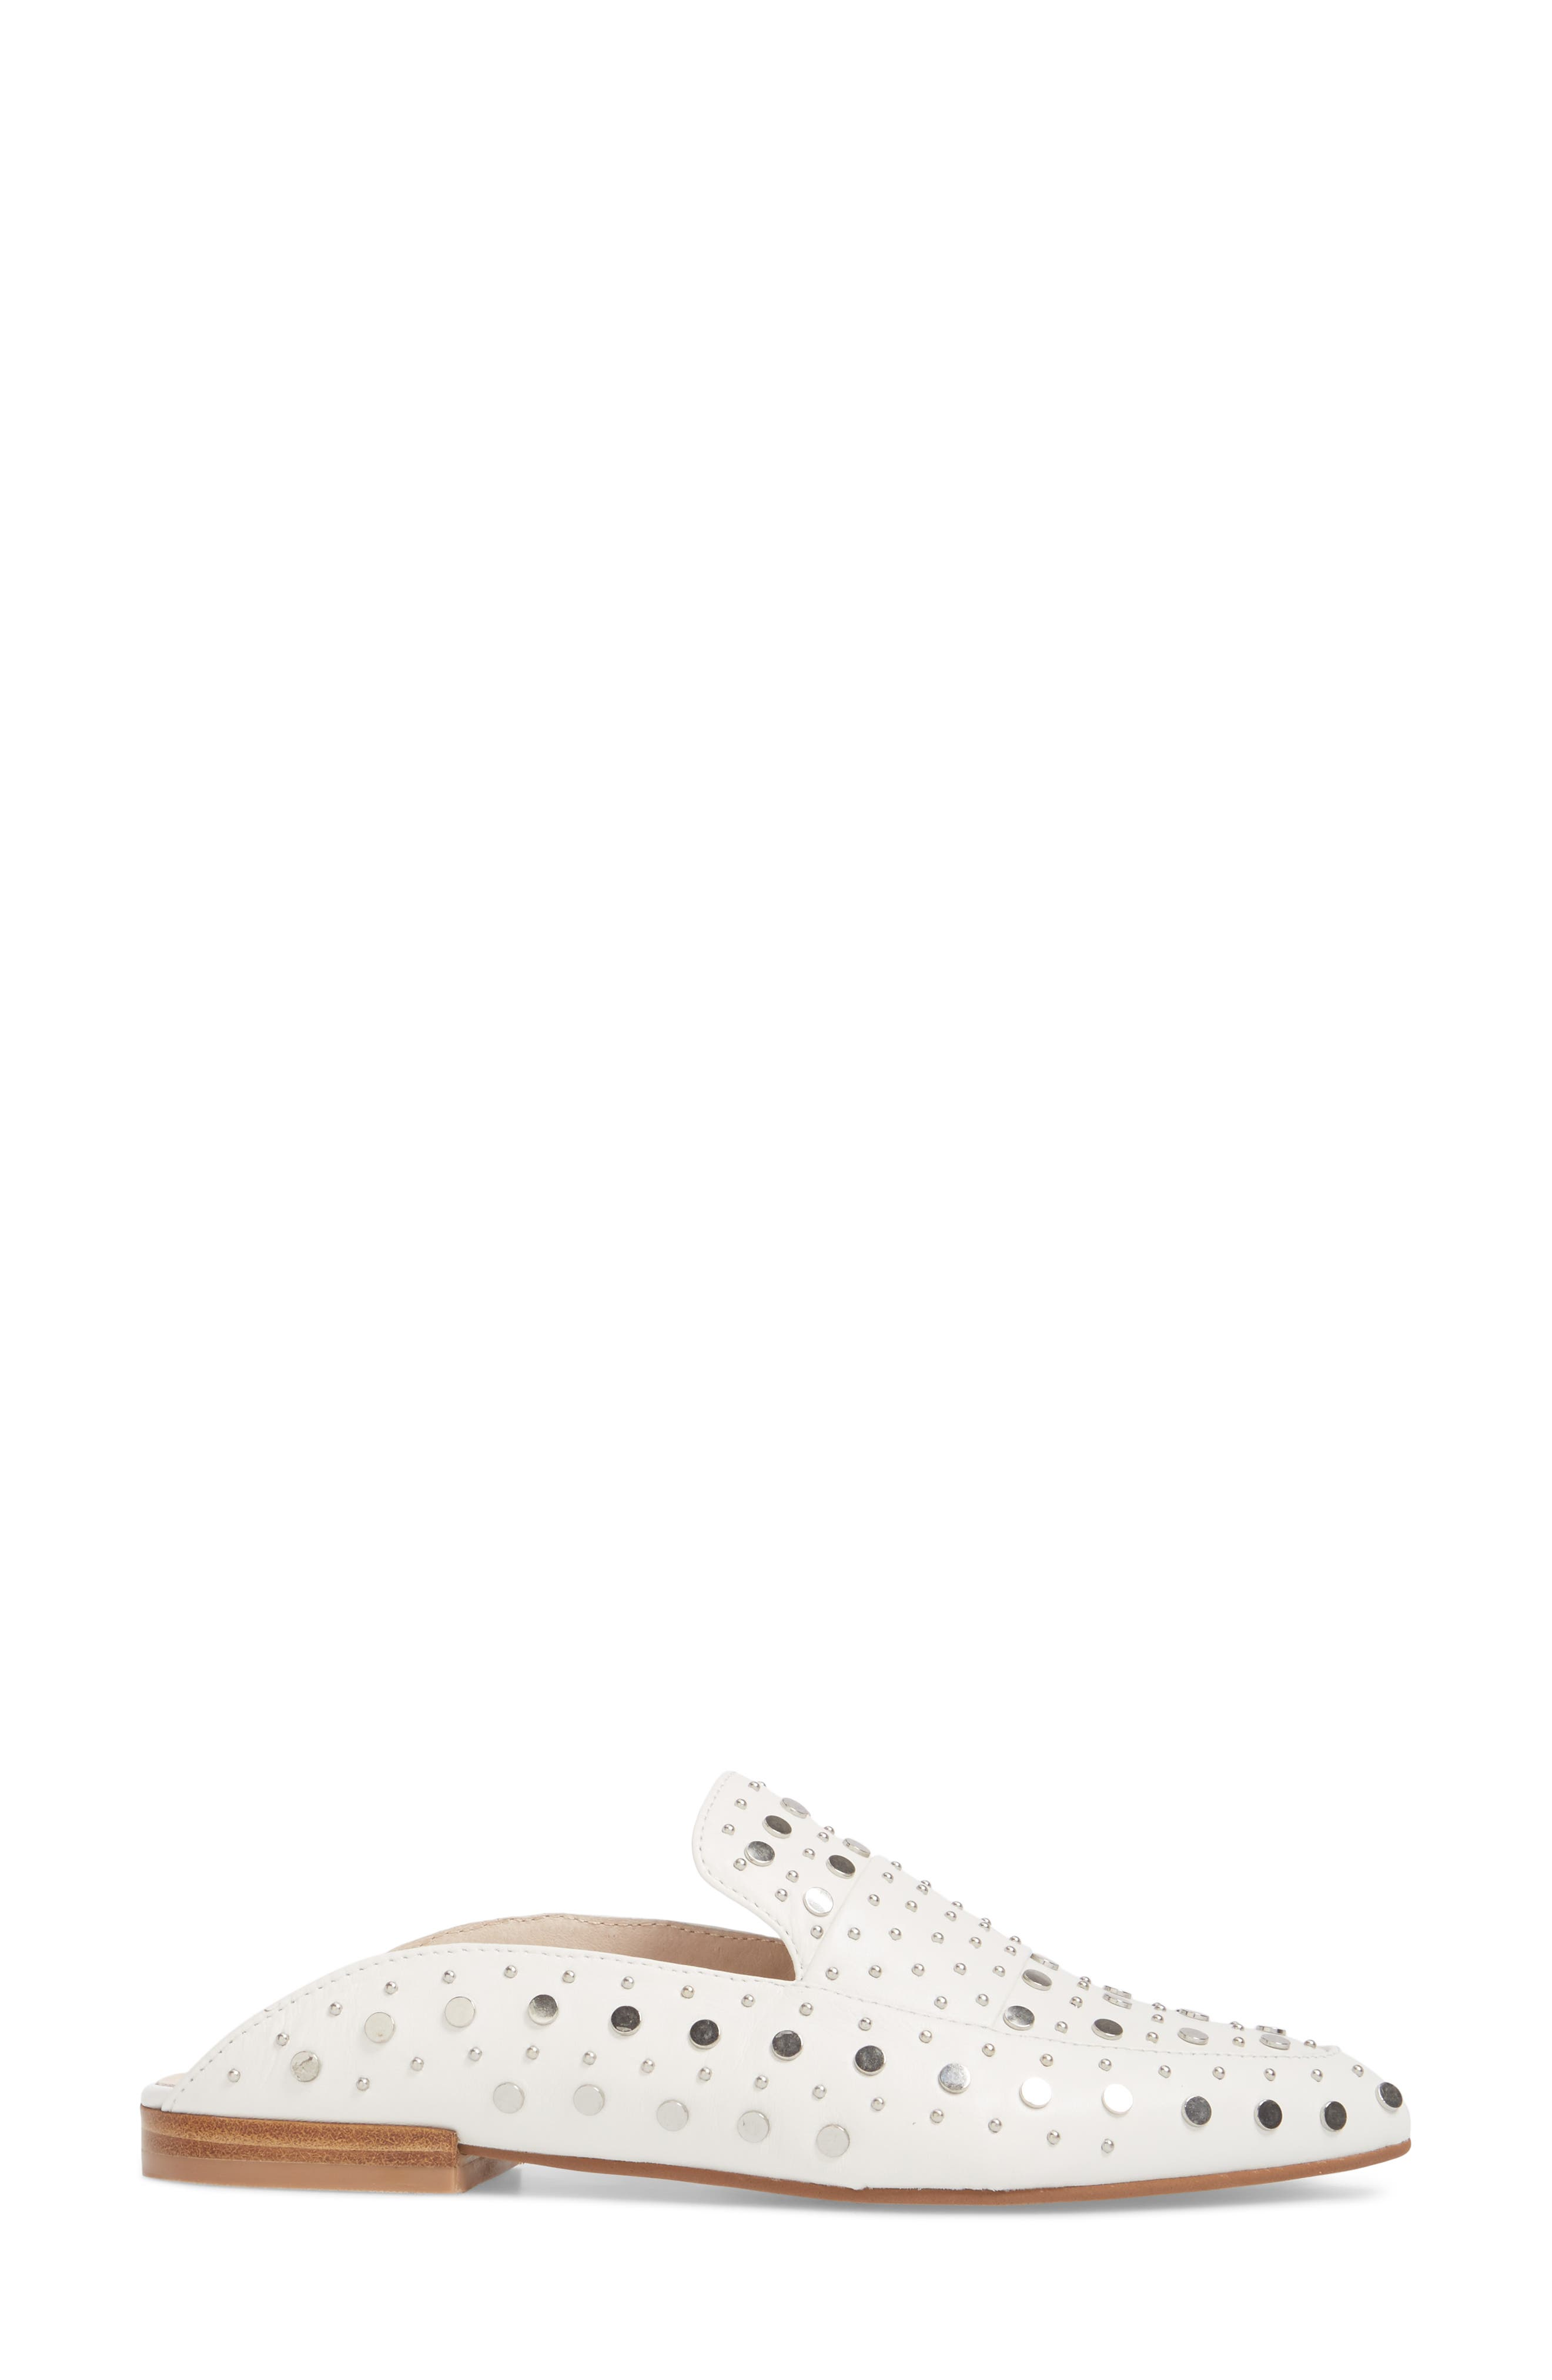 Charlie Studded Loafer Mule,                             Alternate thumbnail 3, color,                             WHITE LEATHER